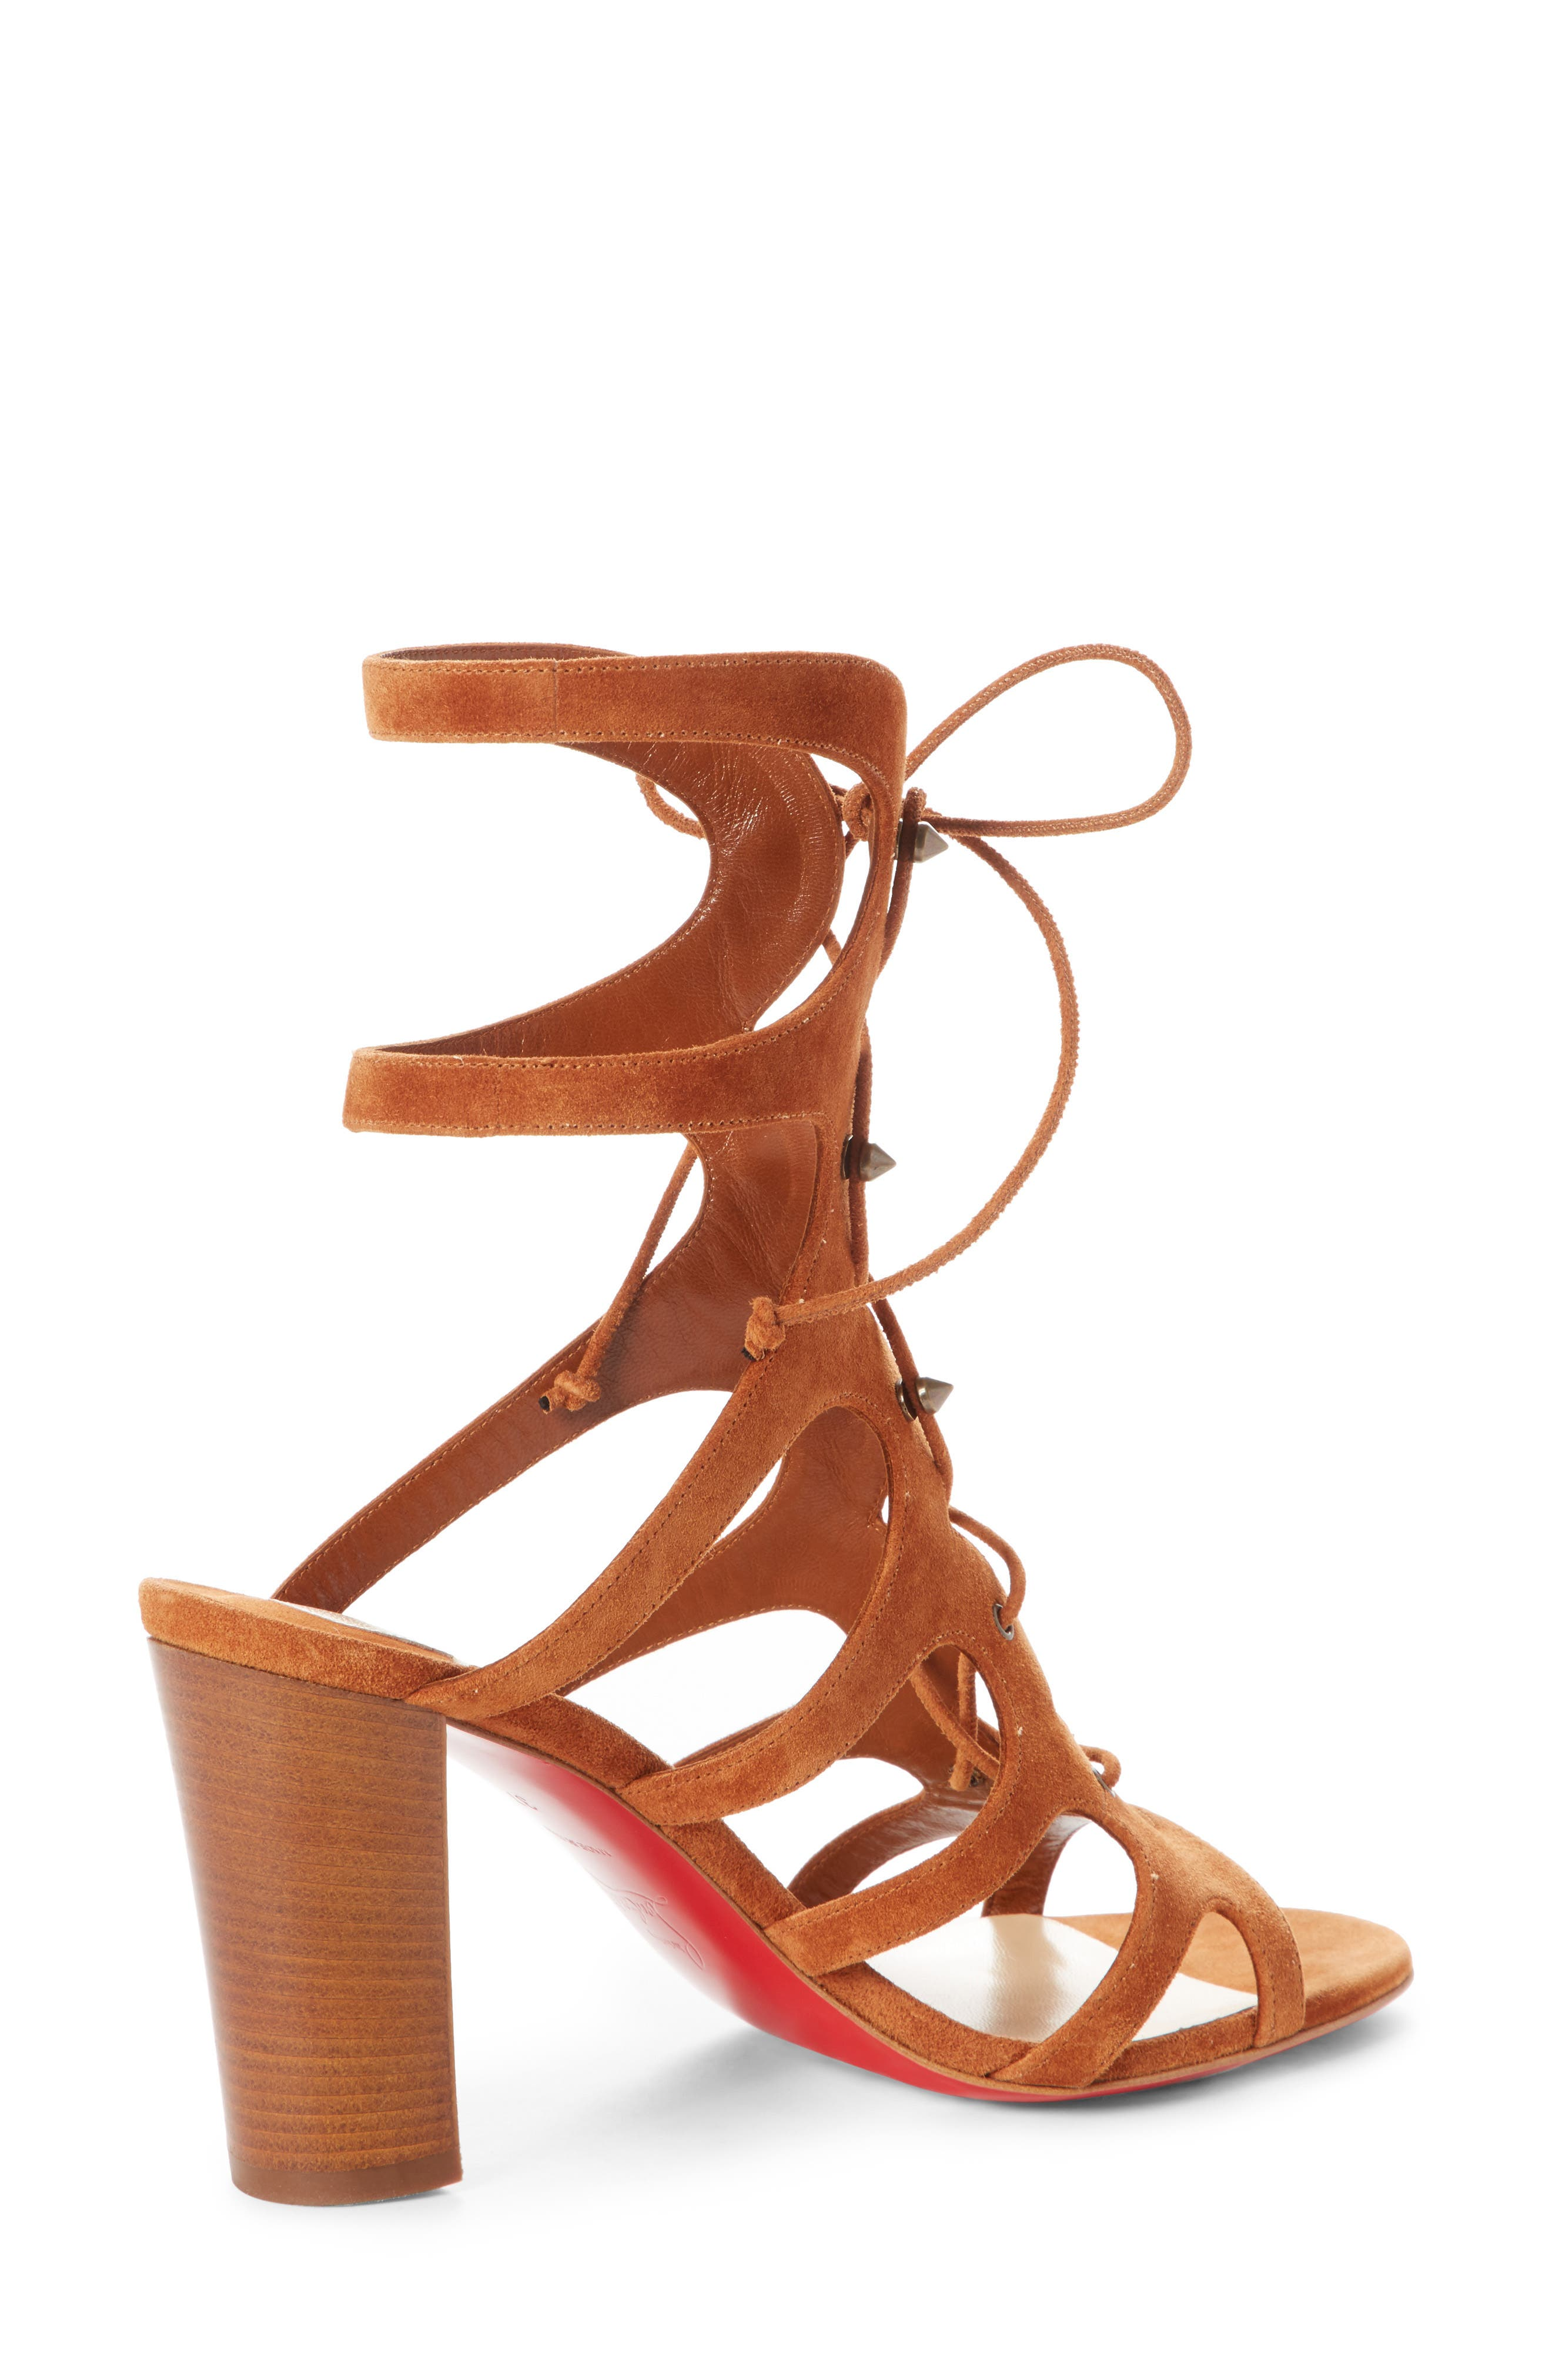 Amazoudur SD Cage Sandal,                             Alternate thumbnail 4, color,